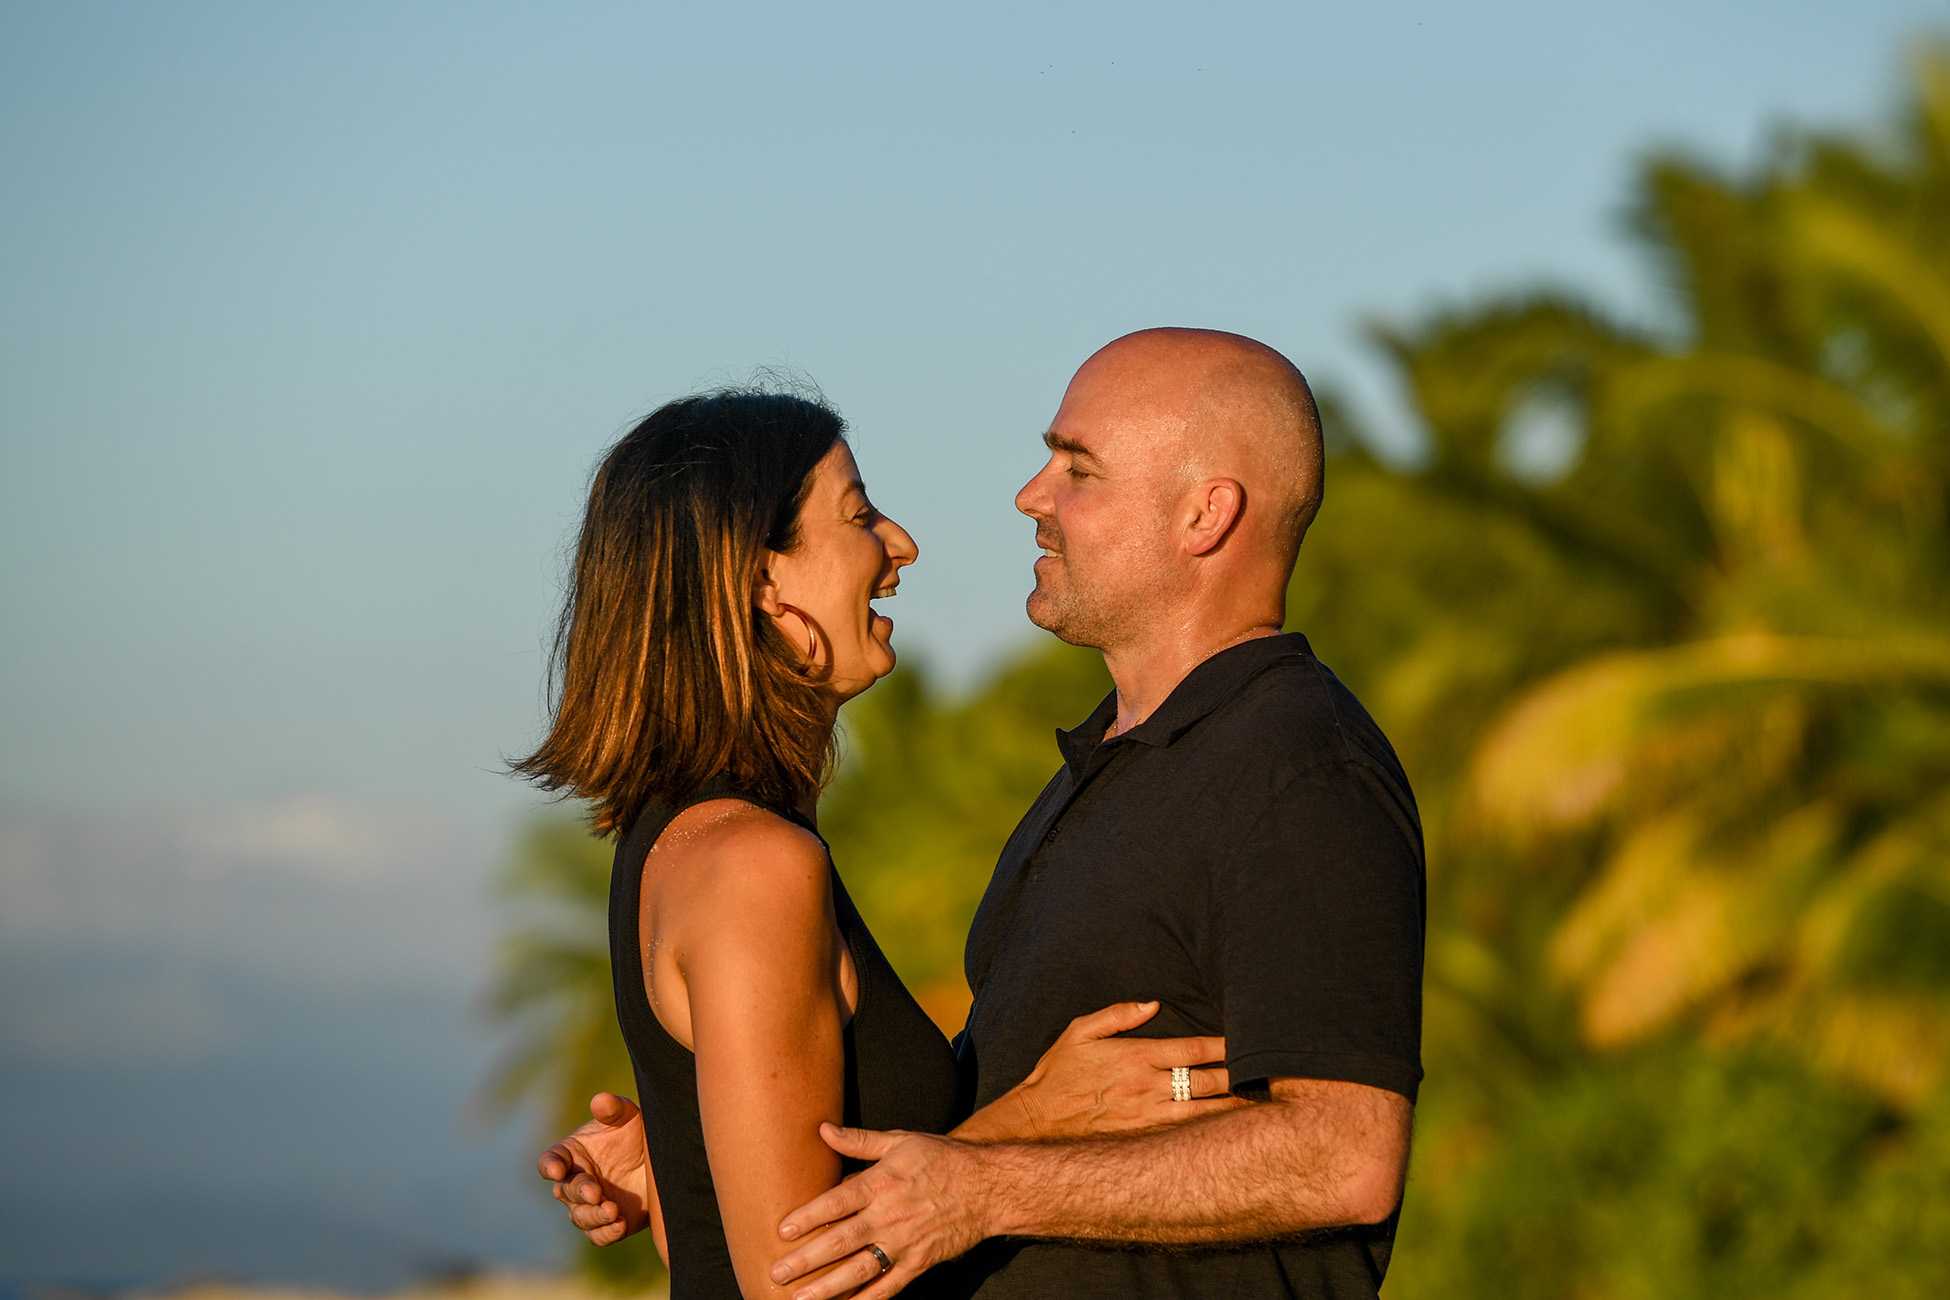 The lovely couple laughs in the sunset